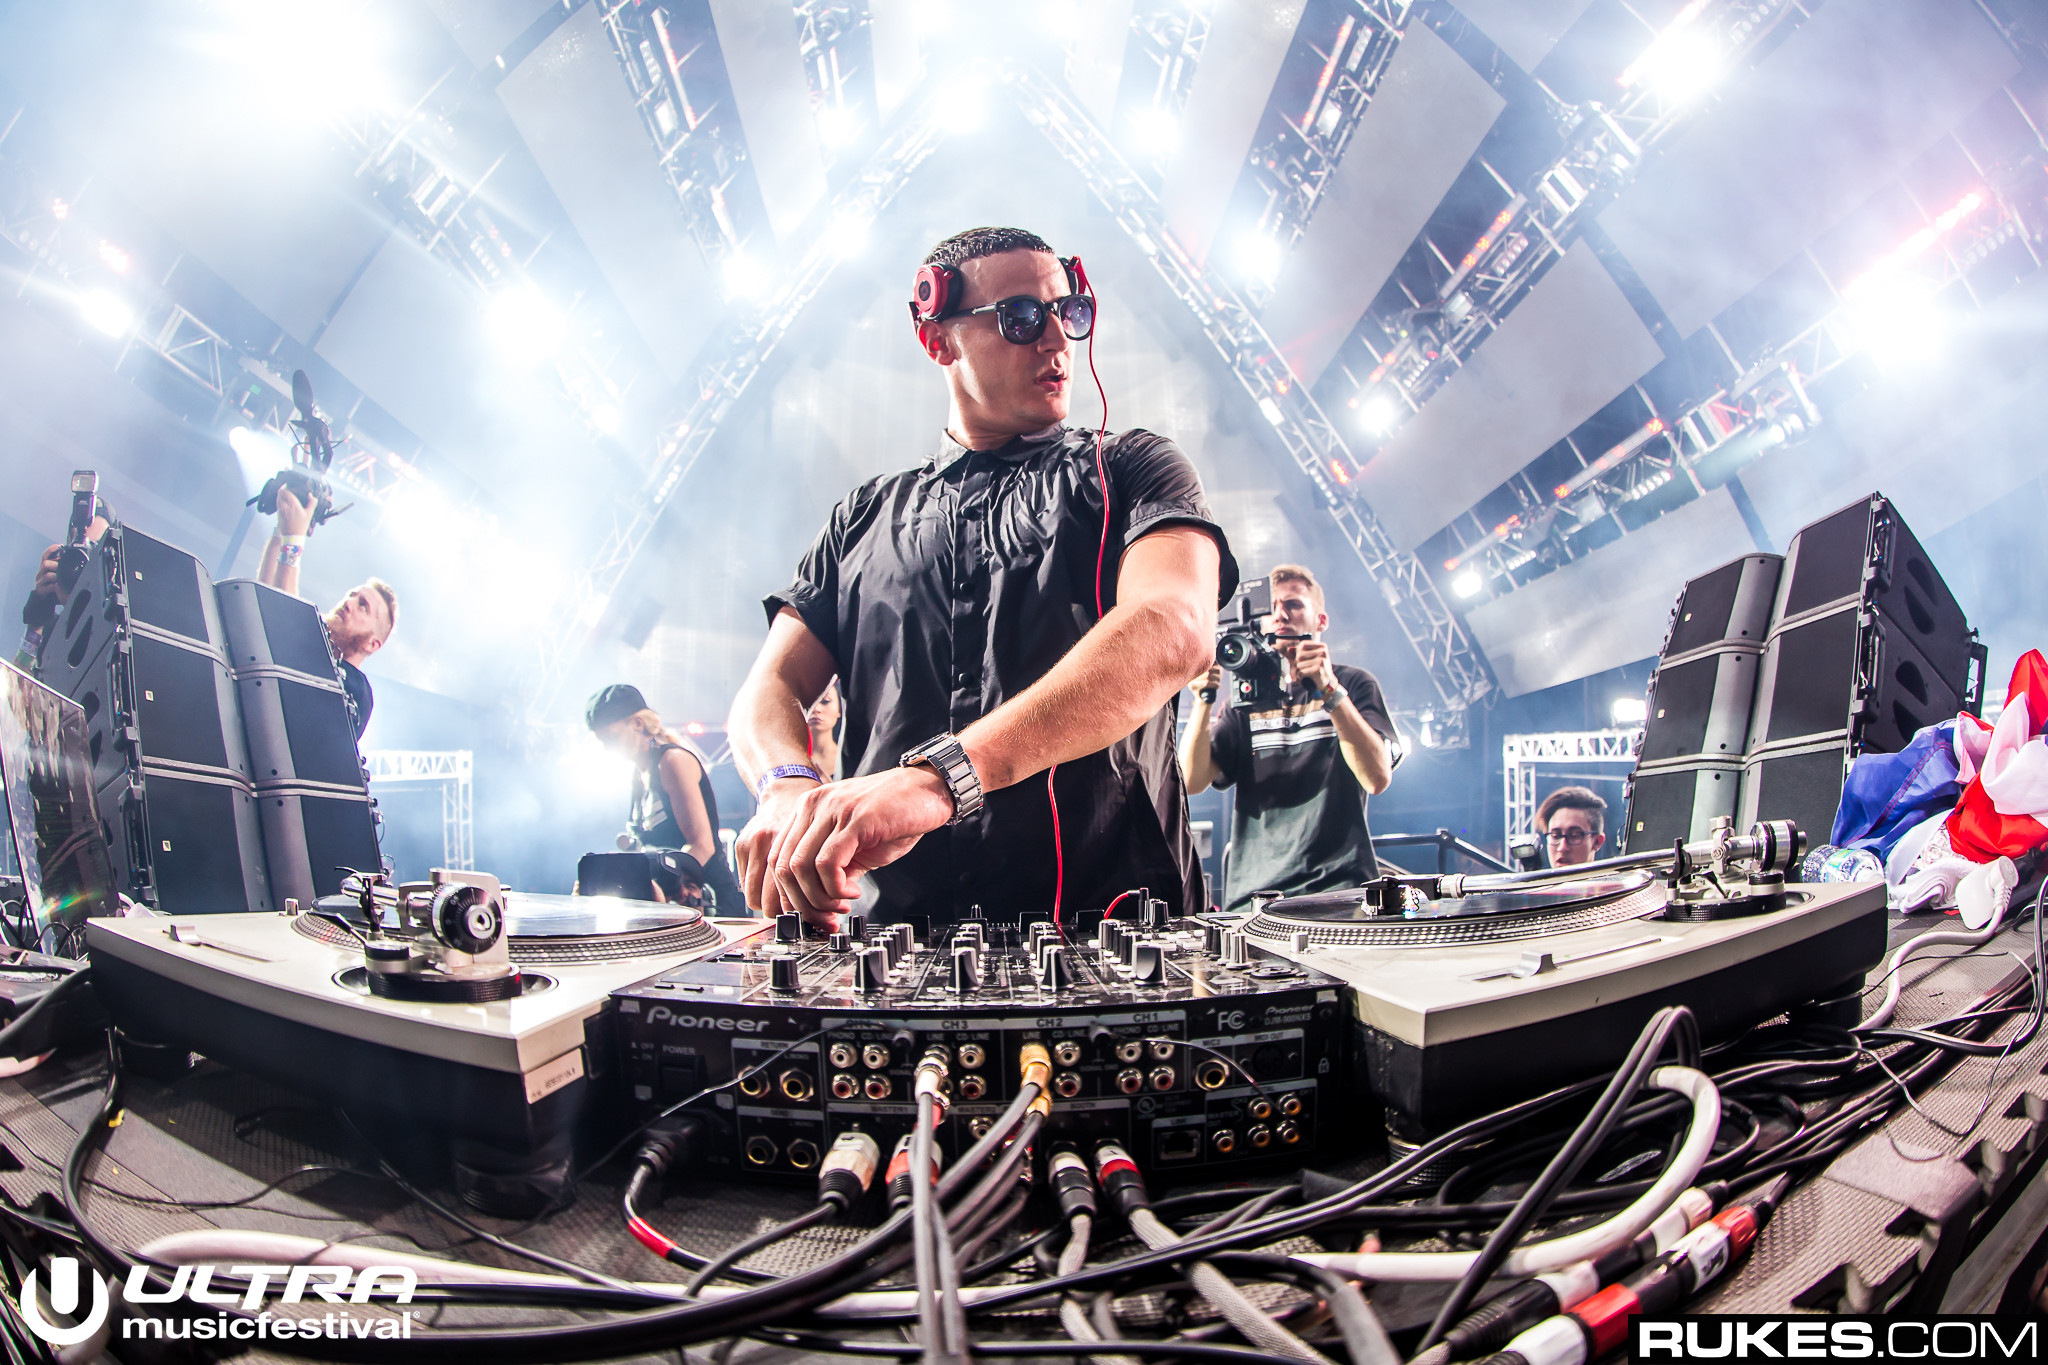 Outdoor House Watch Here Dj Snake Is Closing The Main Stage For Ultra